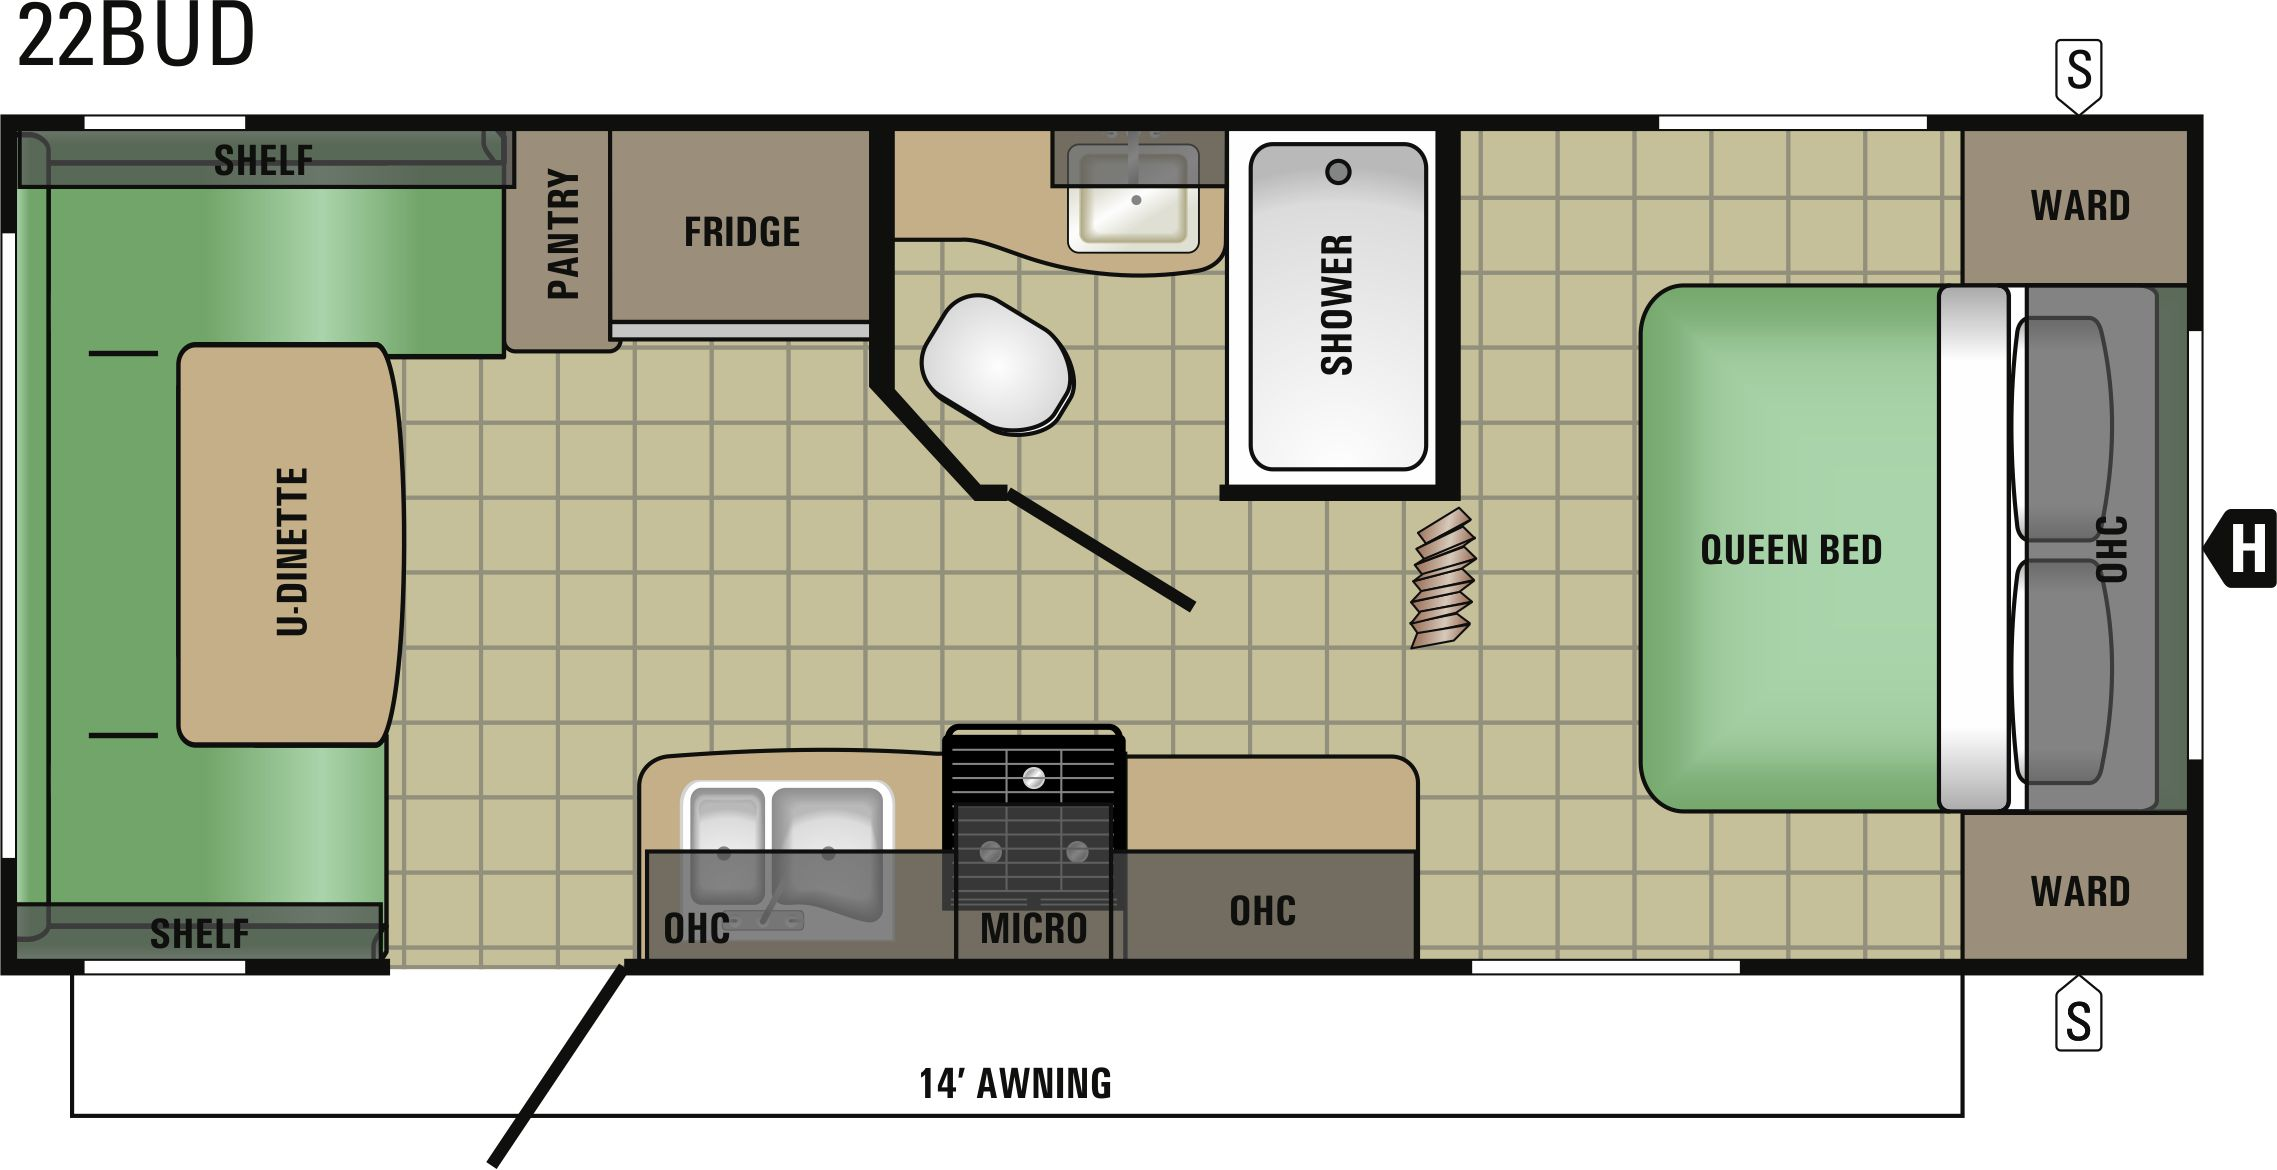 22BUD Floorplan